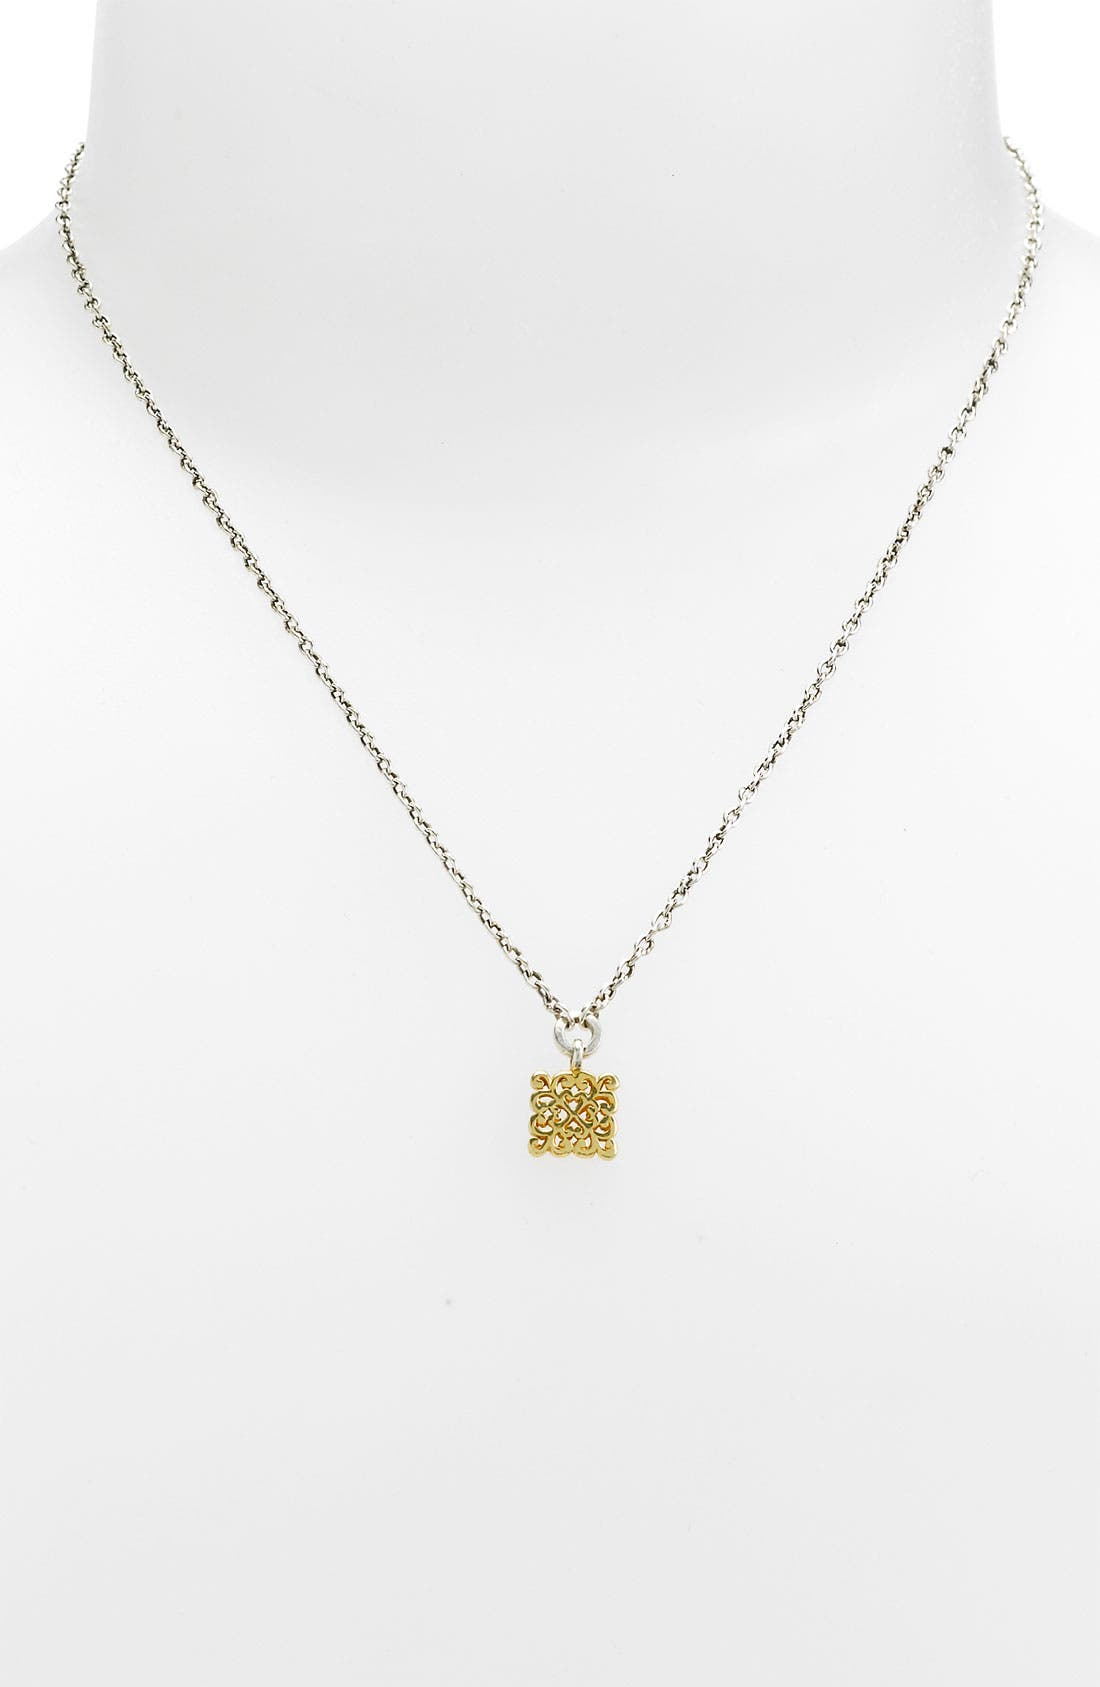 Main Image - Lois Hill 'Two Tone Organic Geo' Extra Small Pendant Necklace (Nordstrom Exclusive)